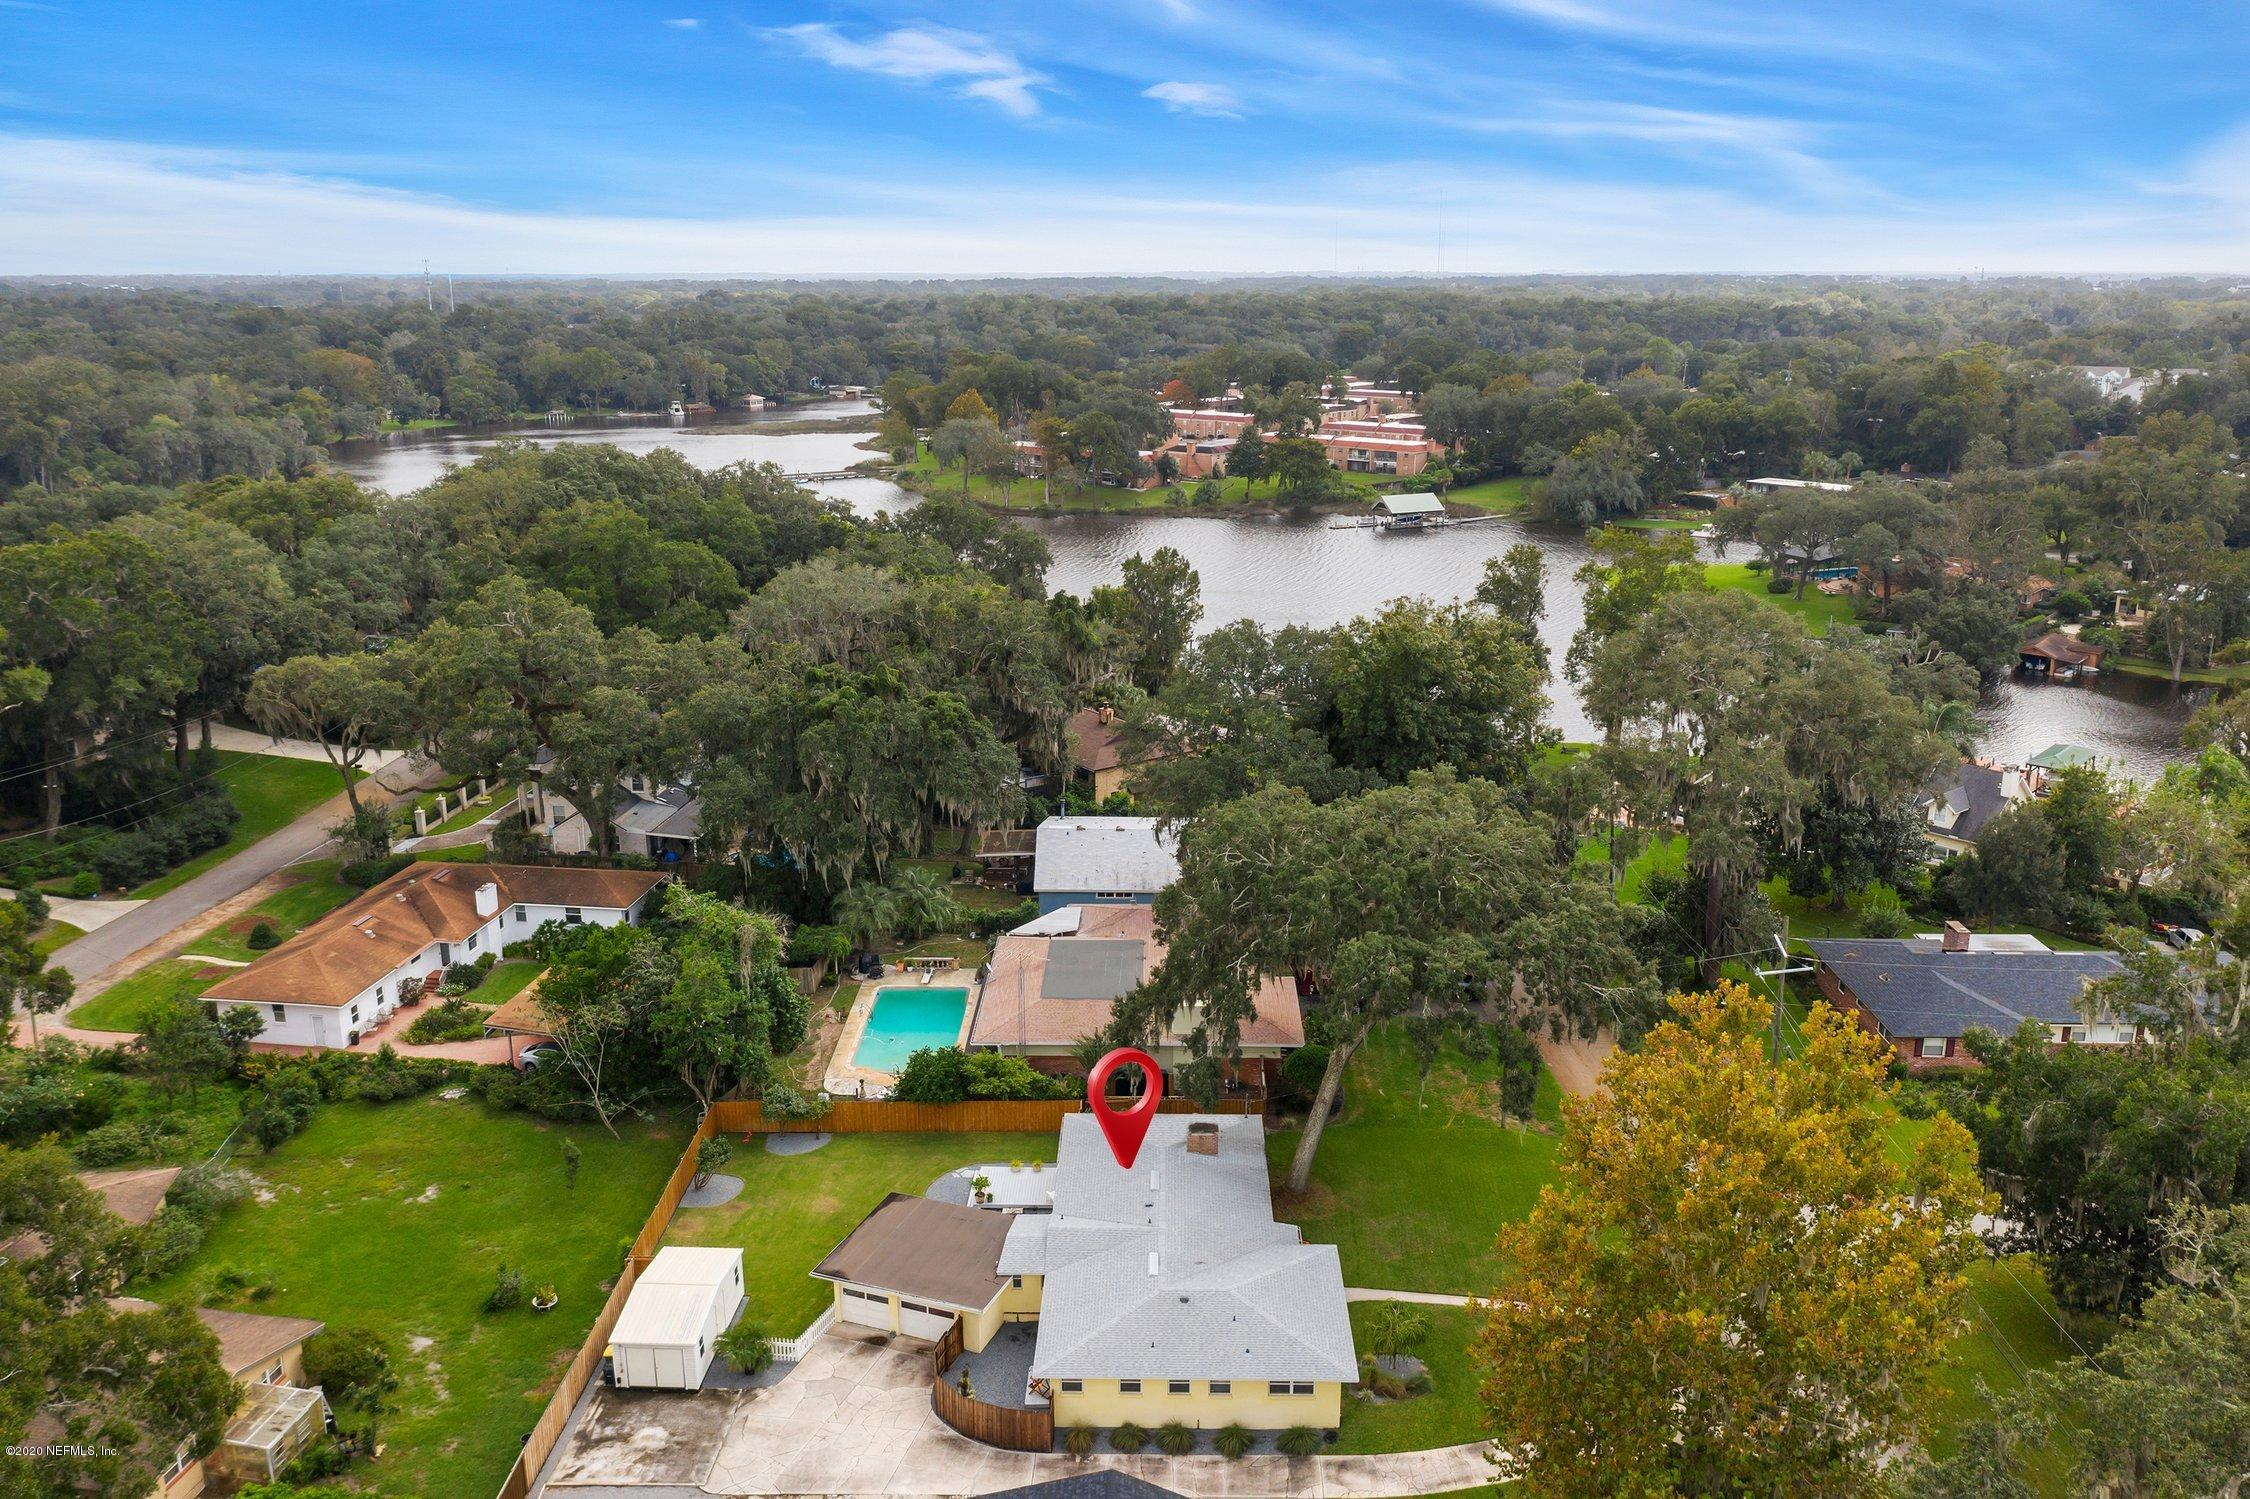 5003 GLADE HILL, JACKSONVILLE, FLORIDA 32207, 4 Bedrooms Bedrooms, ,2 BathroomsBathrooms,Residential,For sale,GLADE HILL,1078986